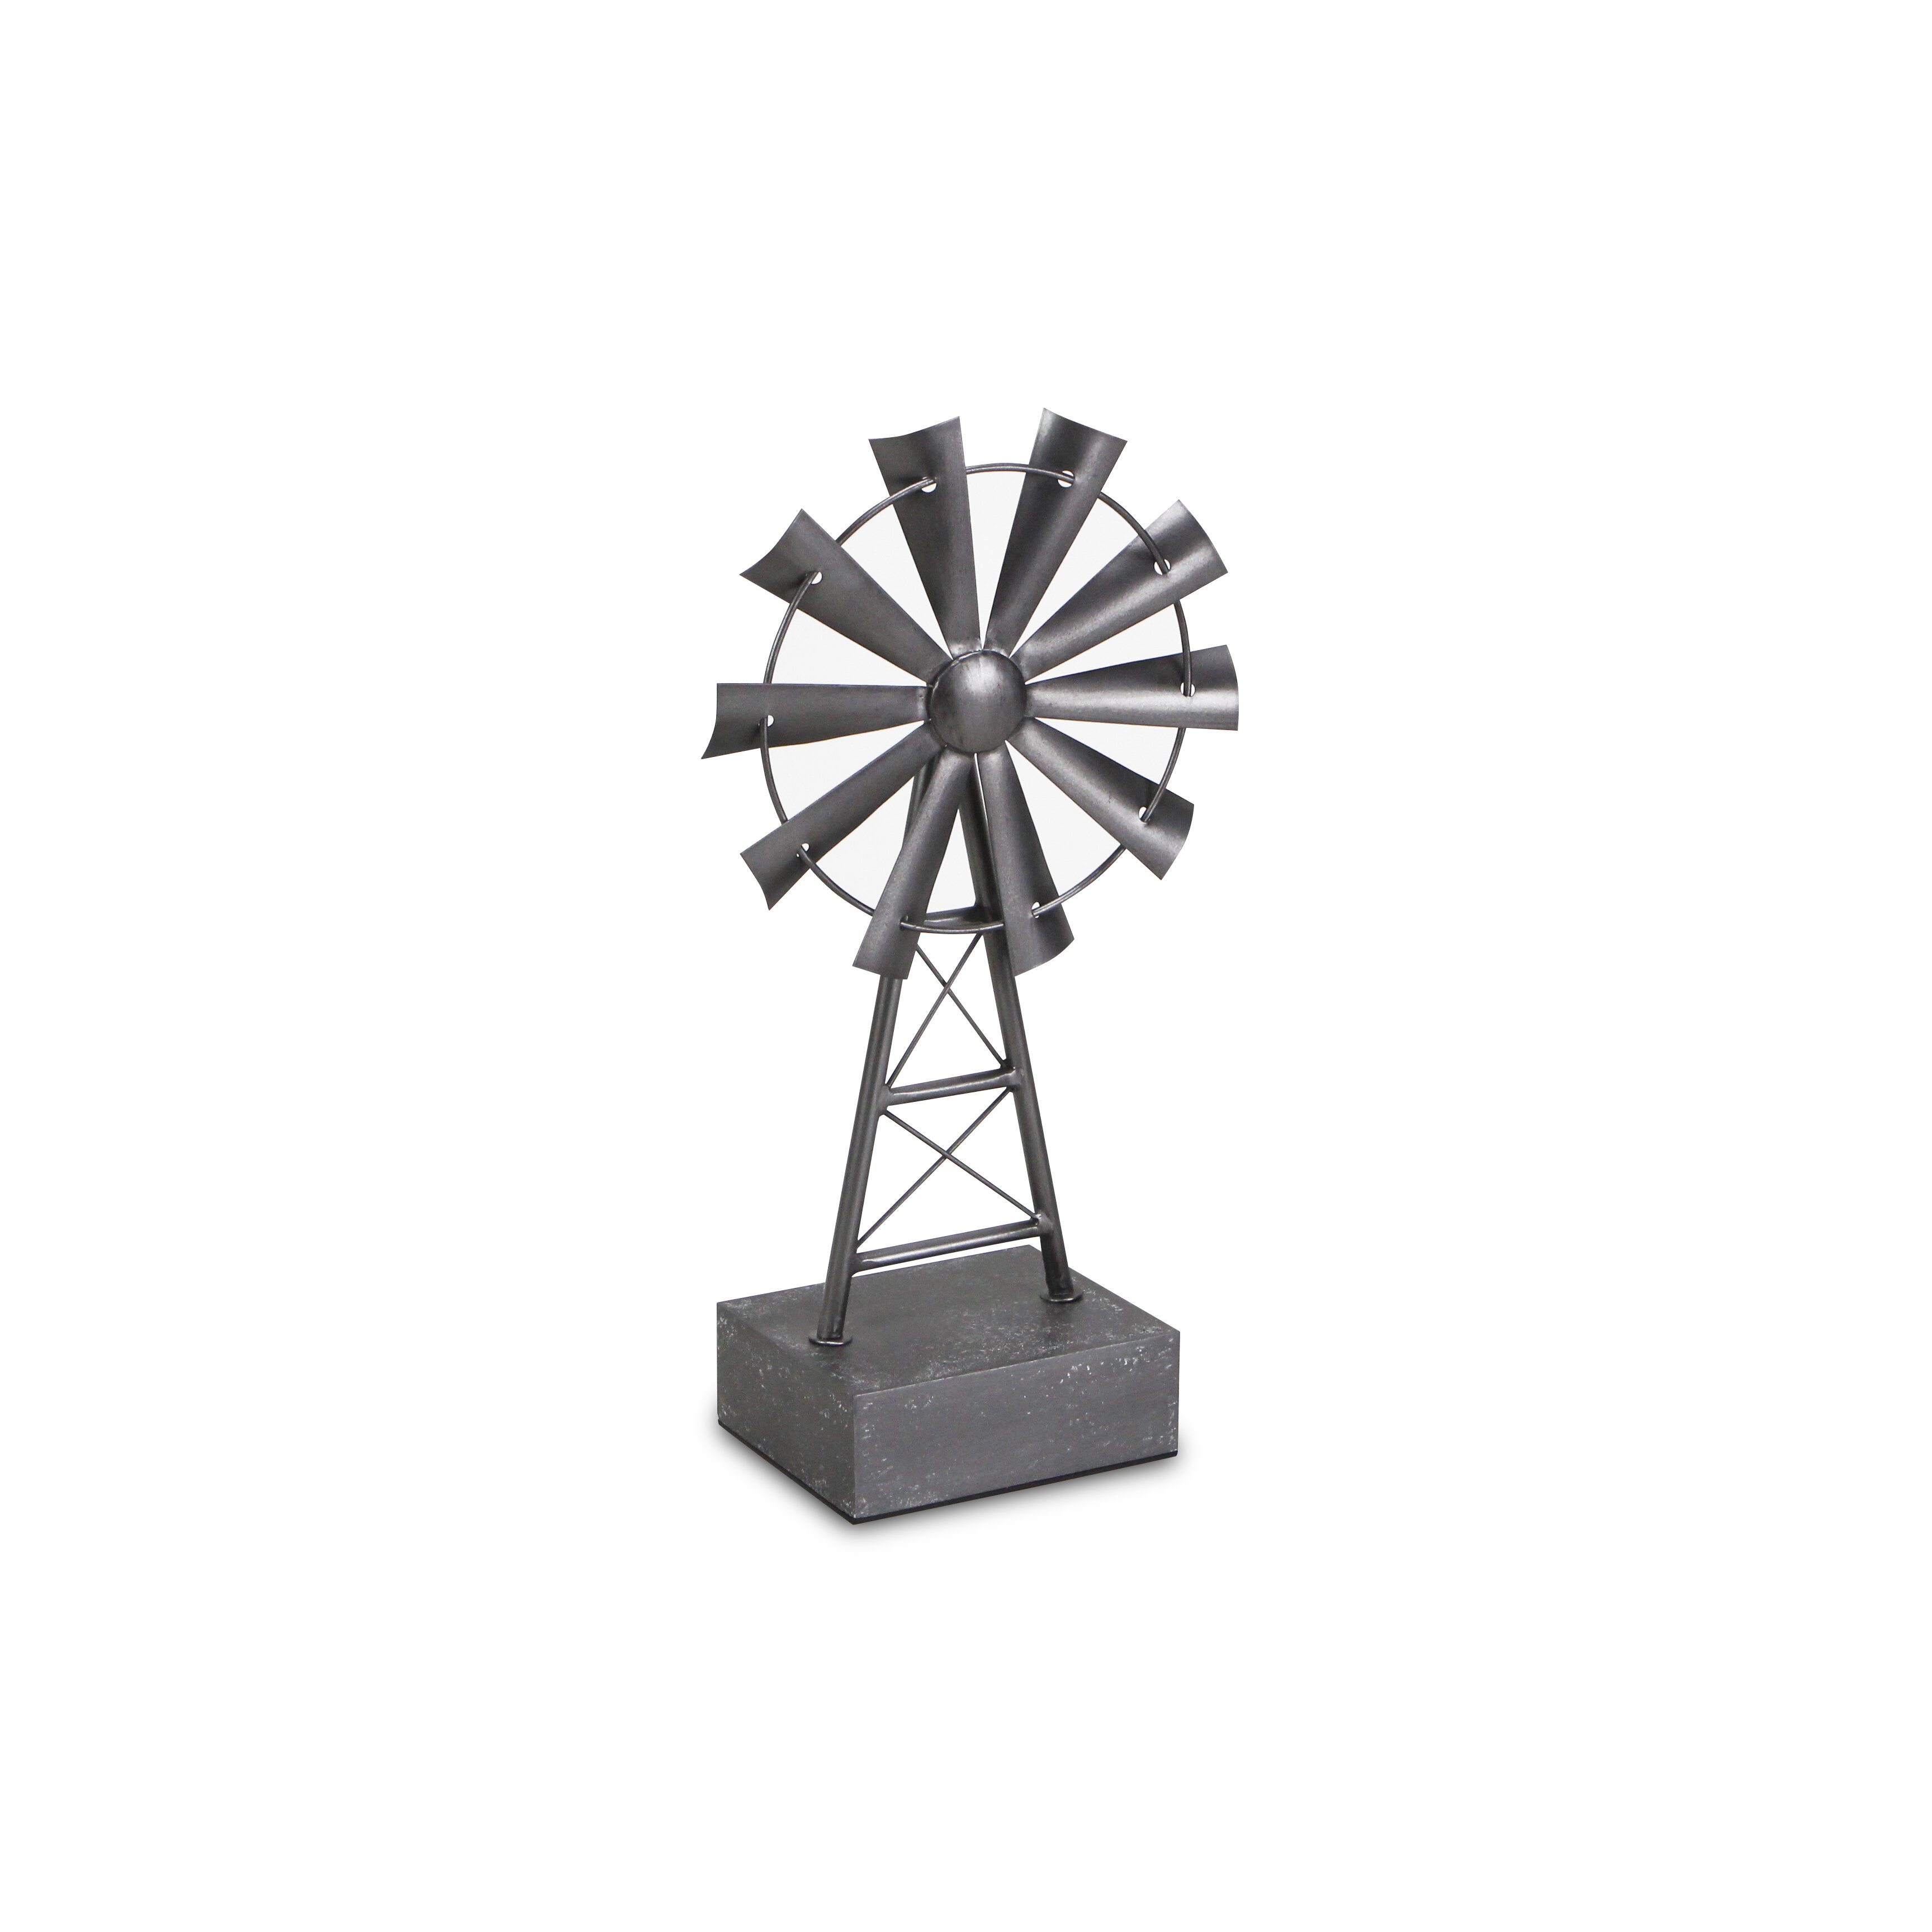 Figurines Sculptures Windmill Decorative Objects You Ll Love In 2021 Wayfair